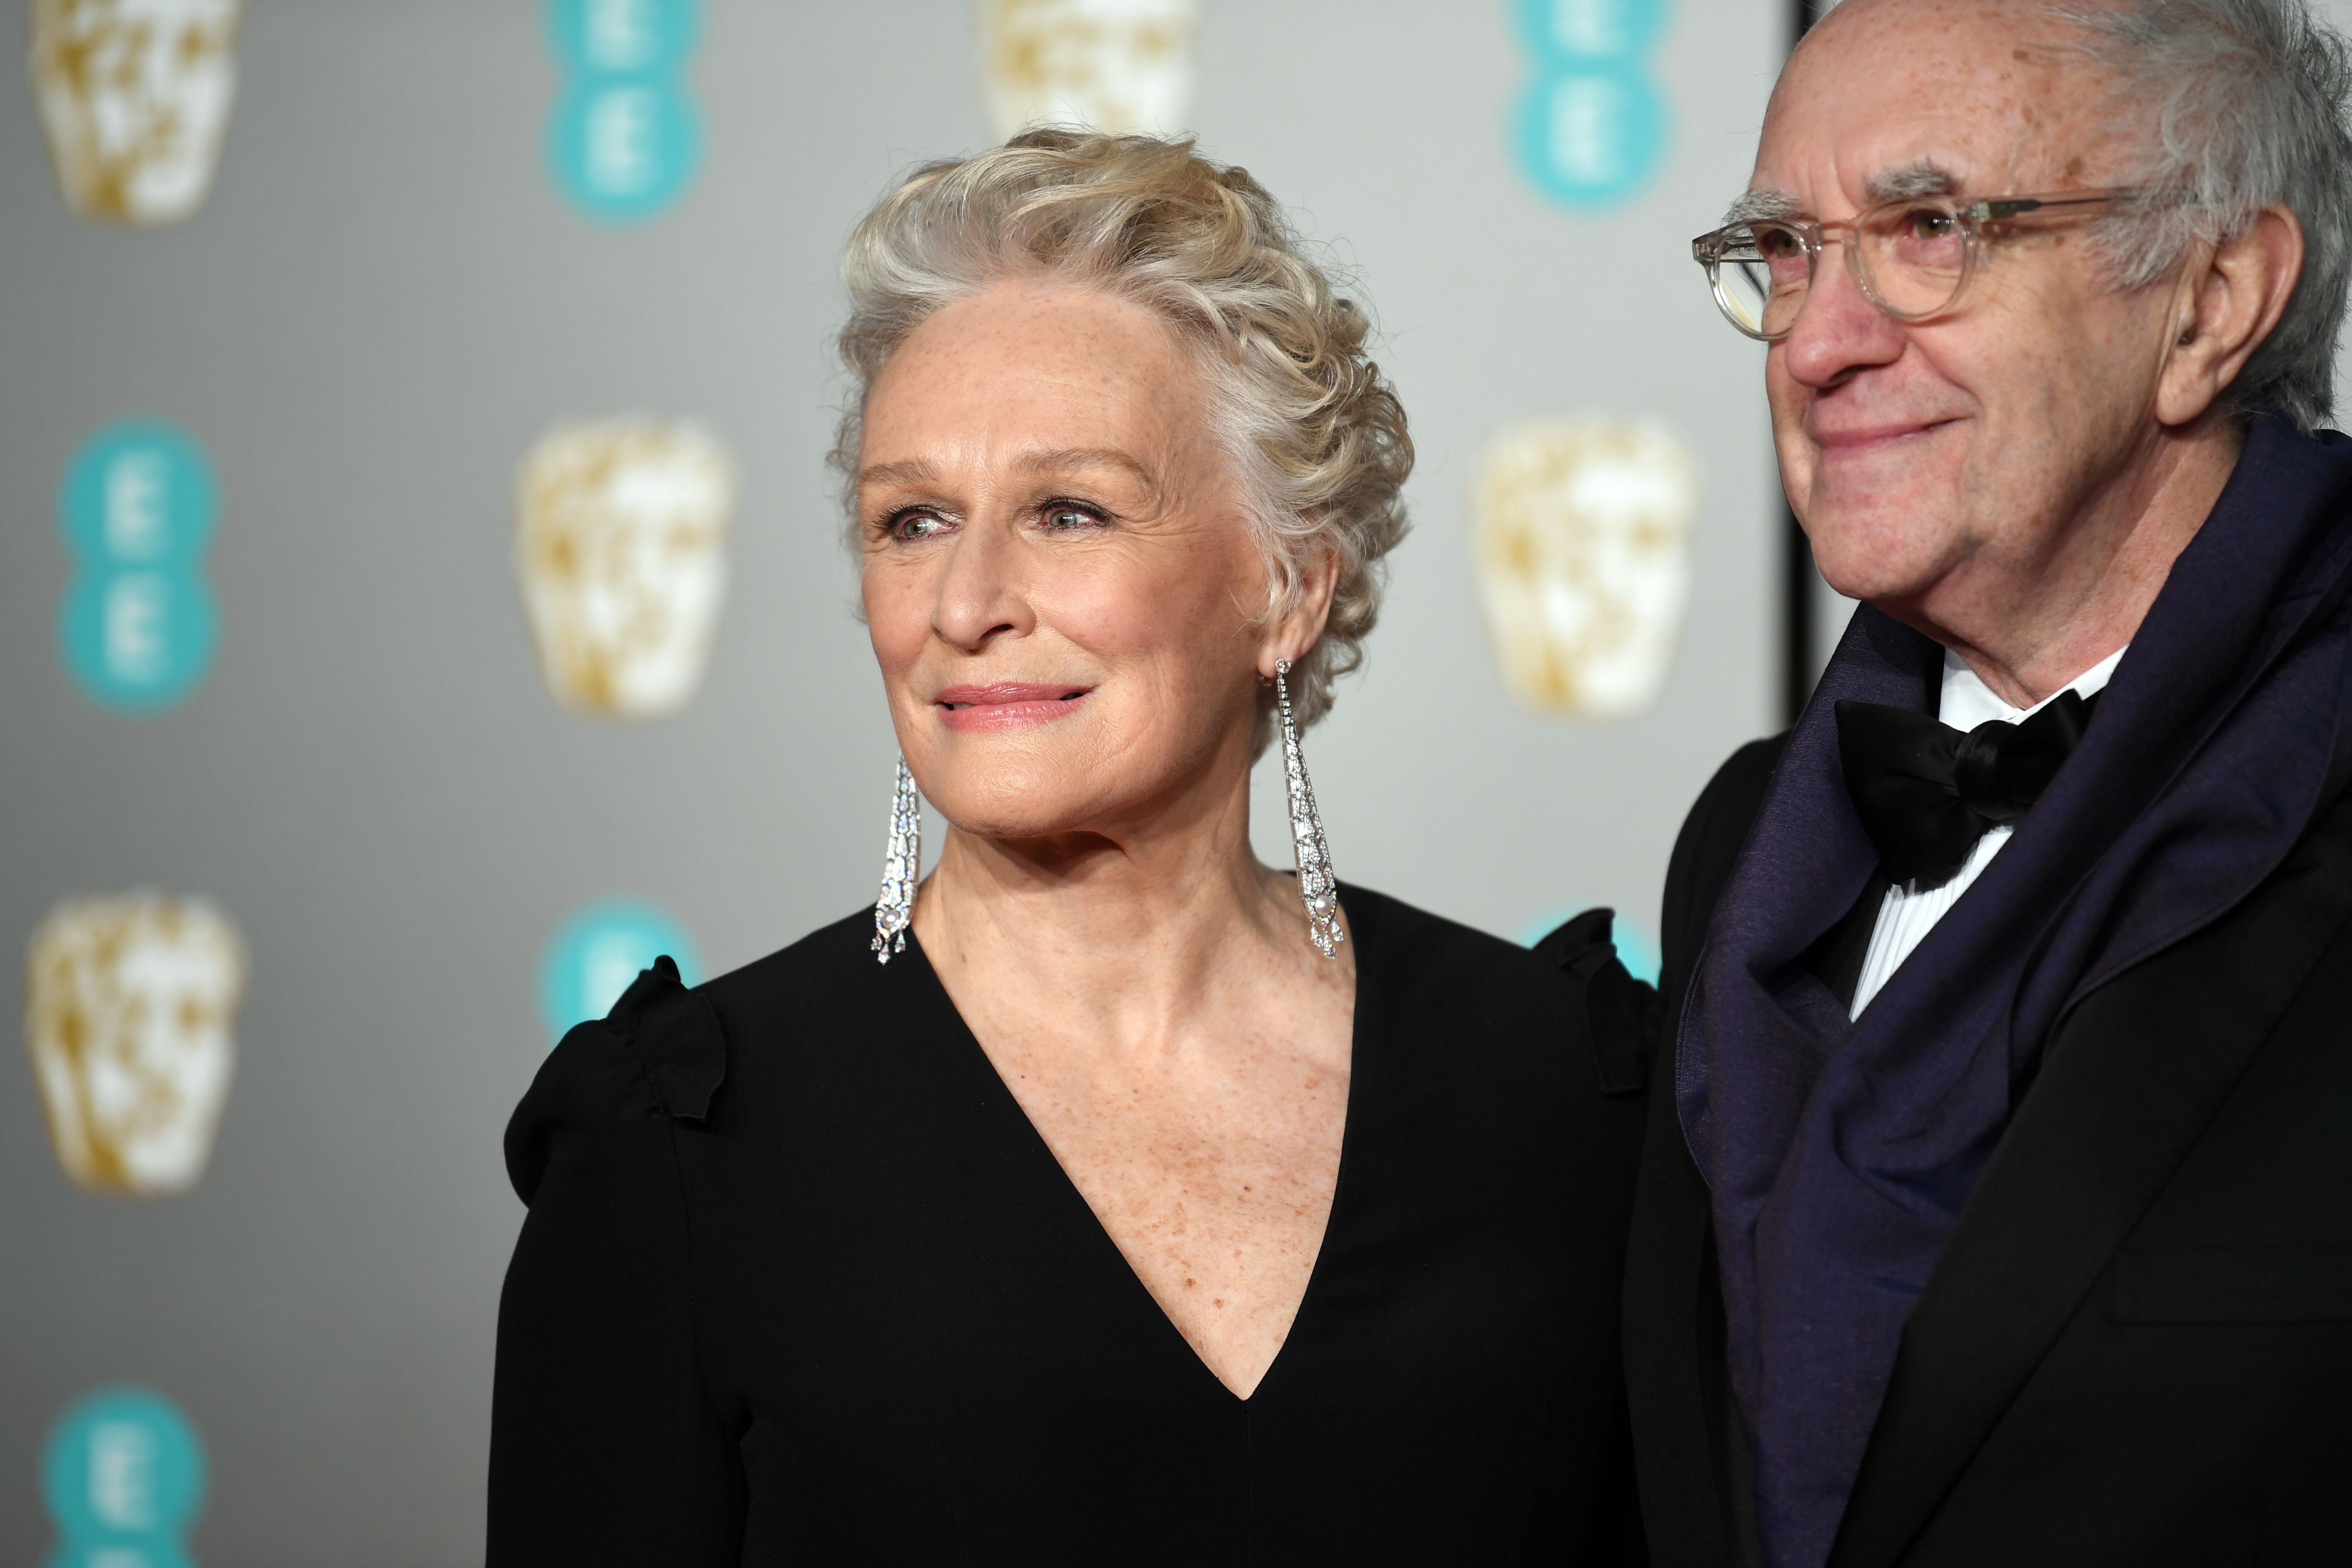 Glenn Close and British actor Jonathan Pryce attend the 72nd annual British Academy Film Awards at the Royal Albert Hall in London, Britain, 10 February 2019. The ceremony is hosted by the British Academy of Film and Television Arts (BAFTA).Arrivals - 2019 EE British Academy Film Awards, London, United Kingdom - 10 Feb 2019